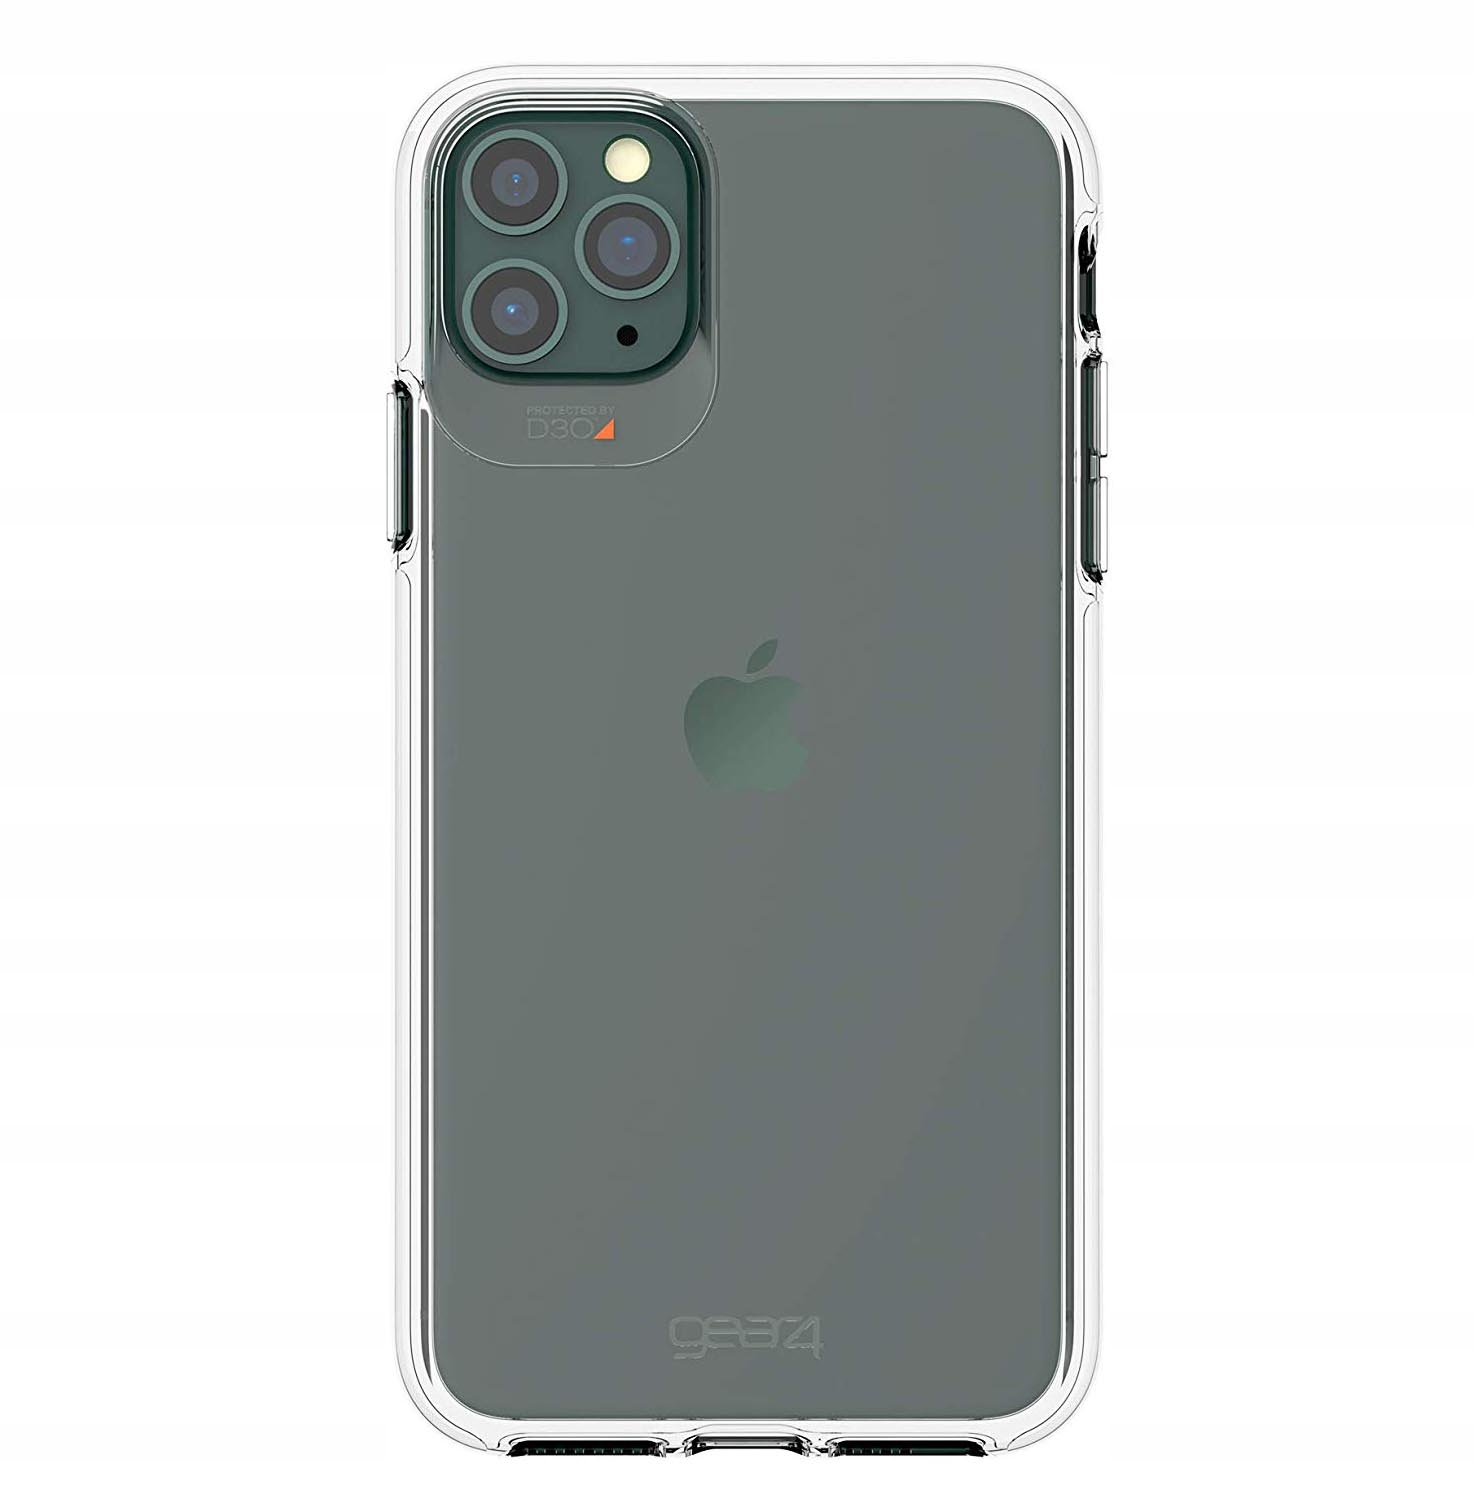 Etui do iPhone 11 Pro Max, Gear4 Crystal Palace